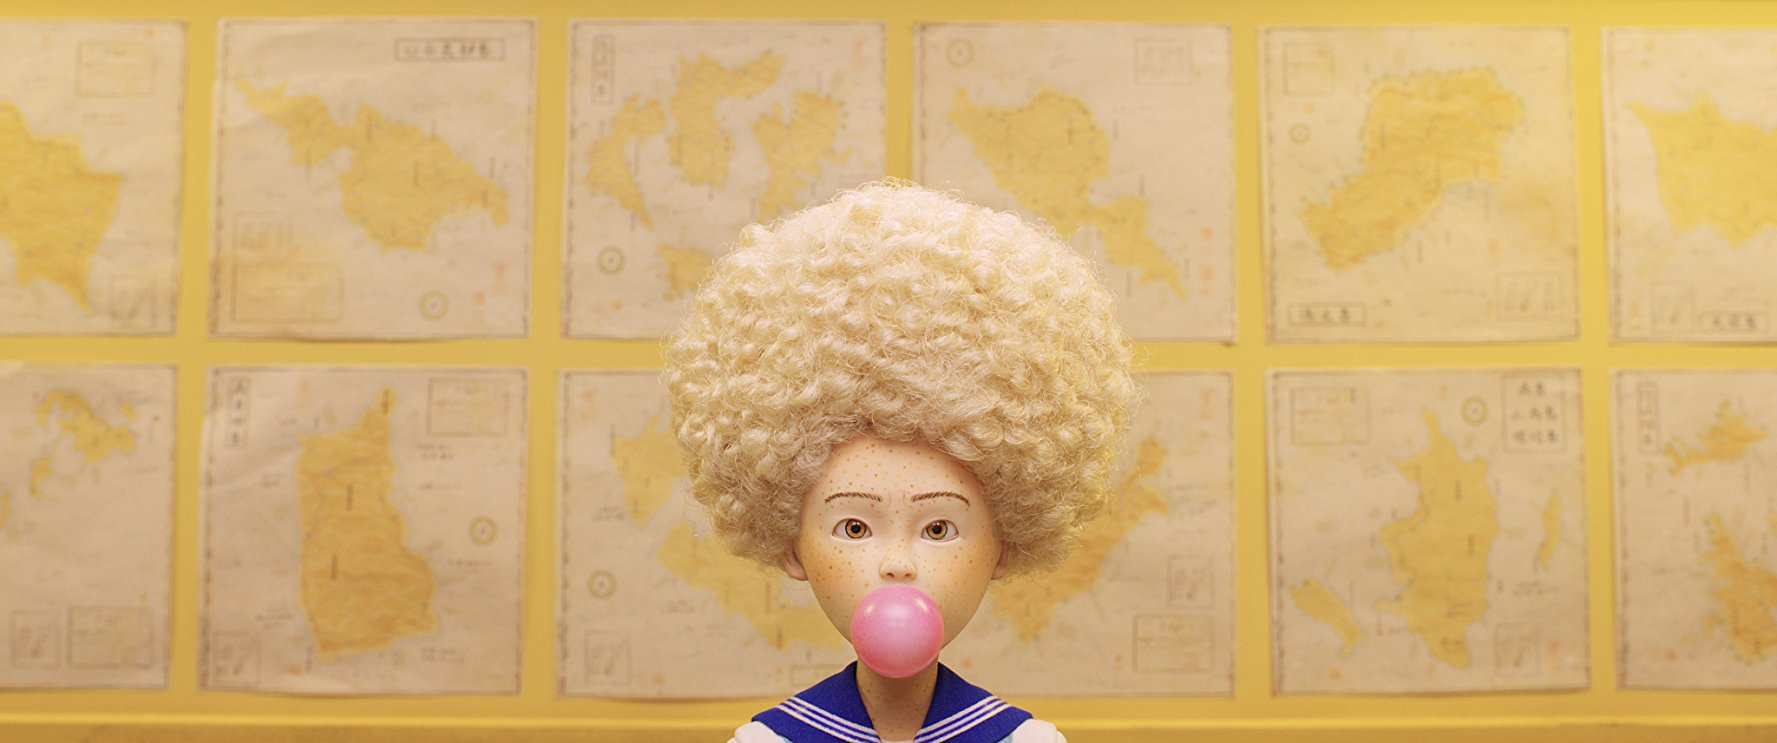 Tracy, voiced by Greta Gerwig, wears an afro and chews pink bubble gum.